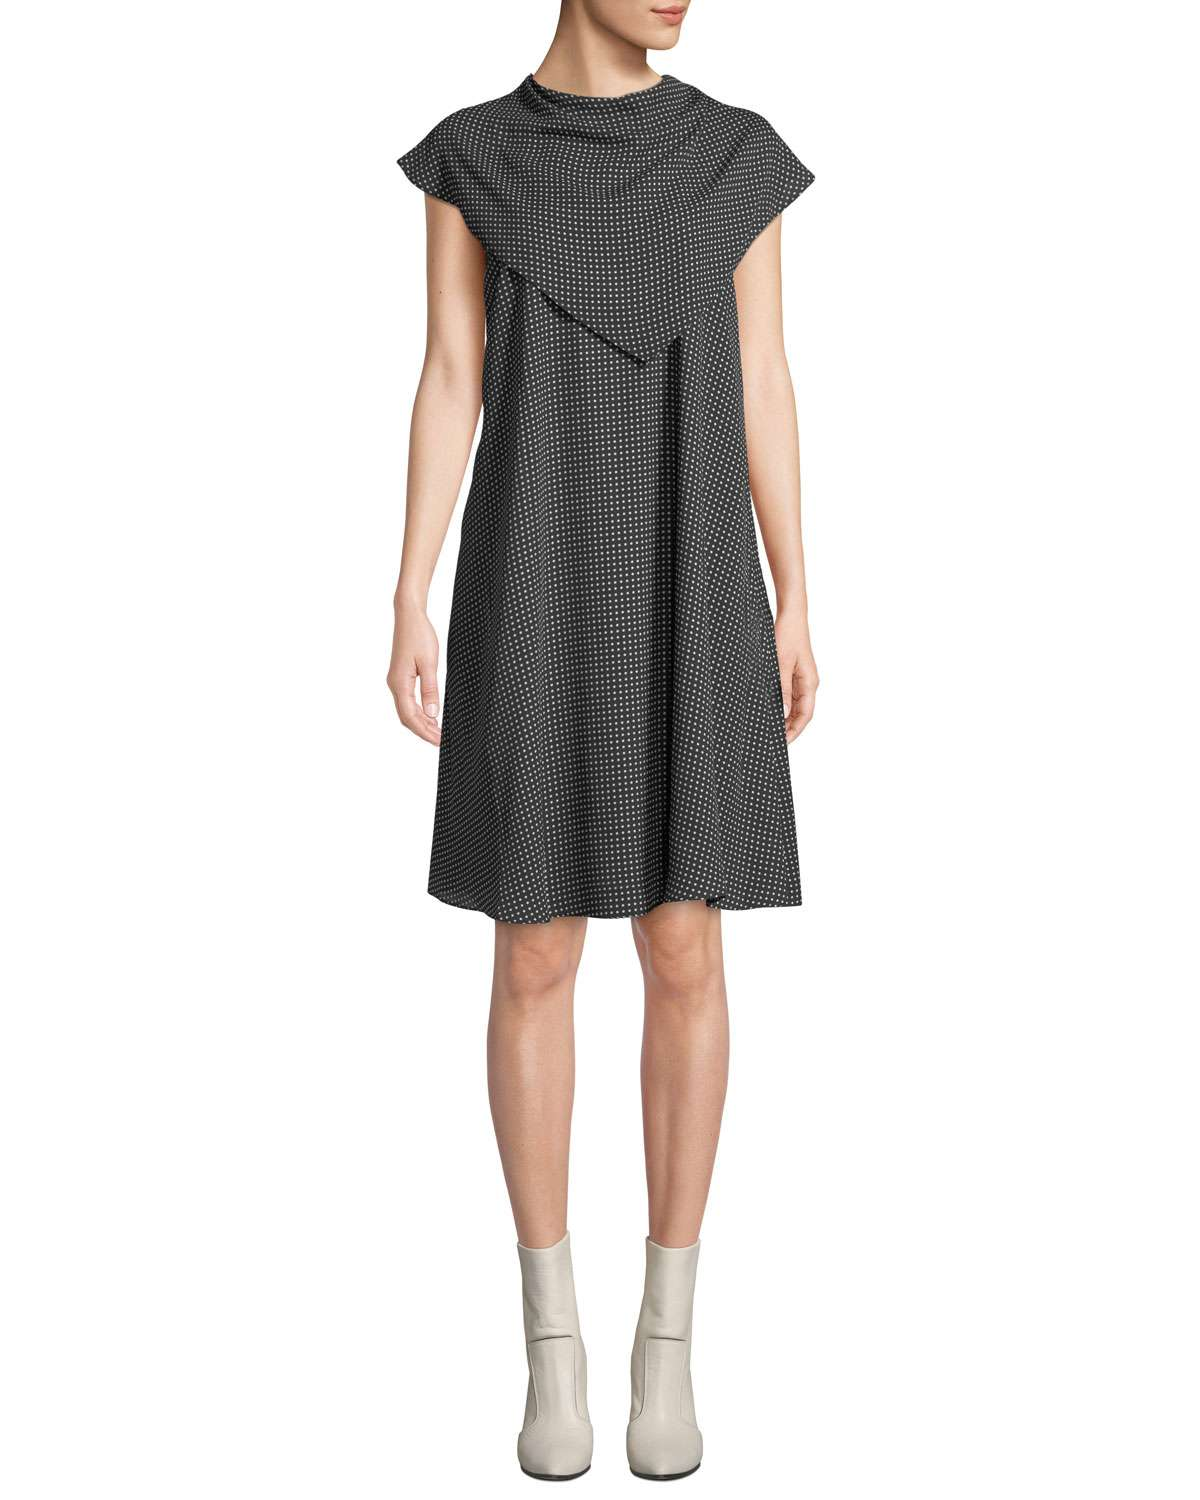 The Thanh Popover Cap-Sleeve Dress